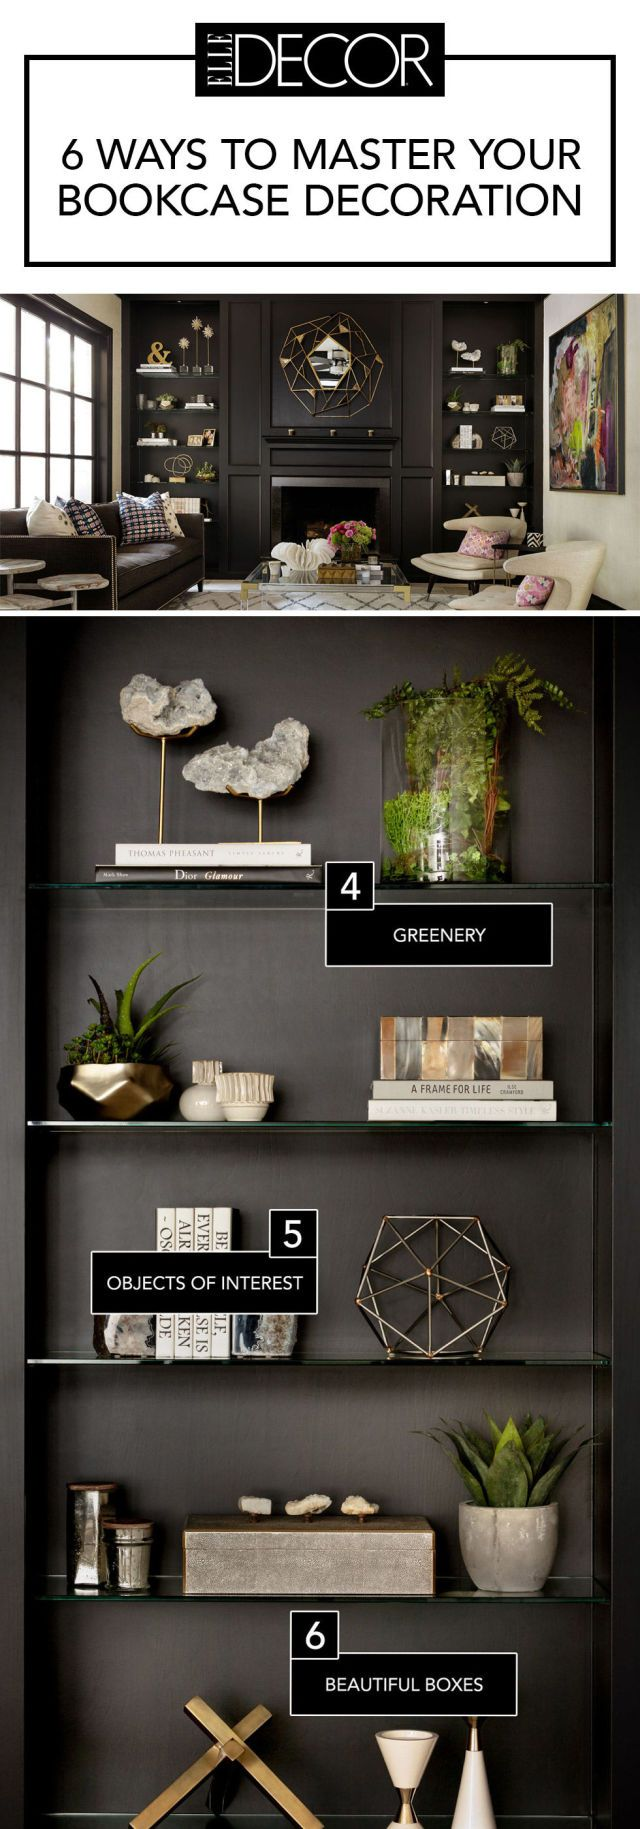 6 Secrets To A Perfectly Styled Bookcase  Black Living RoomsLiving Room Wall ShelvesShelf Ideas For Best 25 Decorative shelves ideas on Pinterest Floating shelf